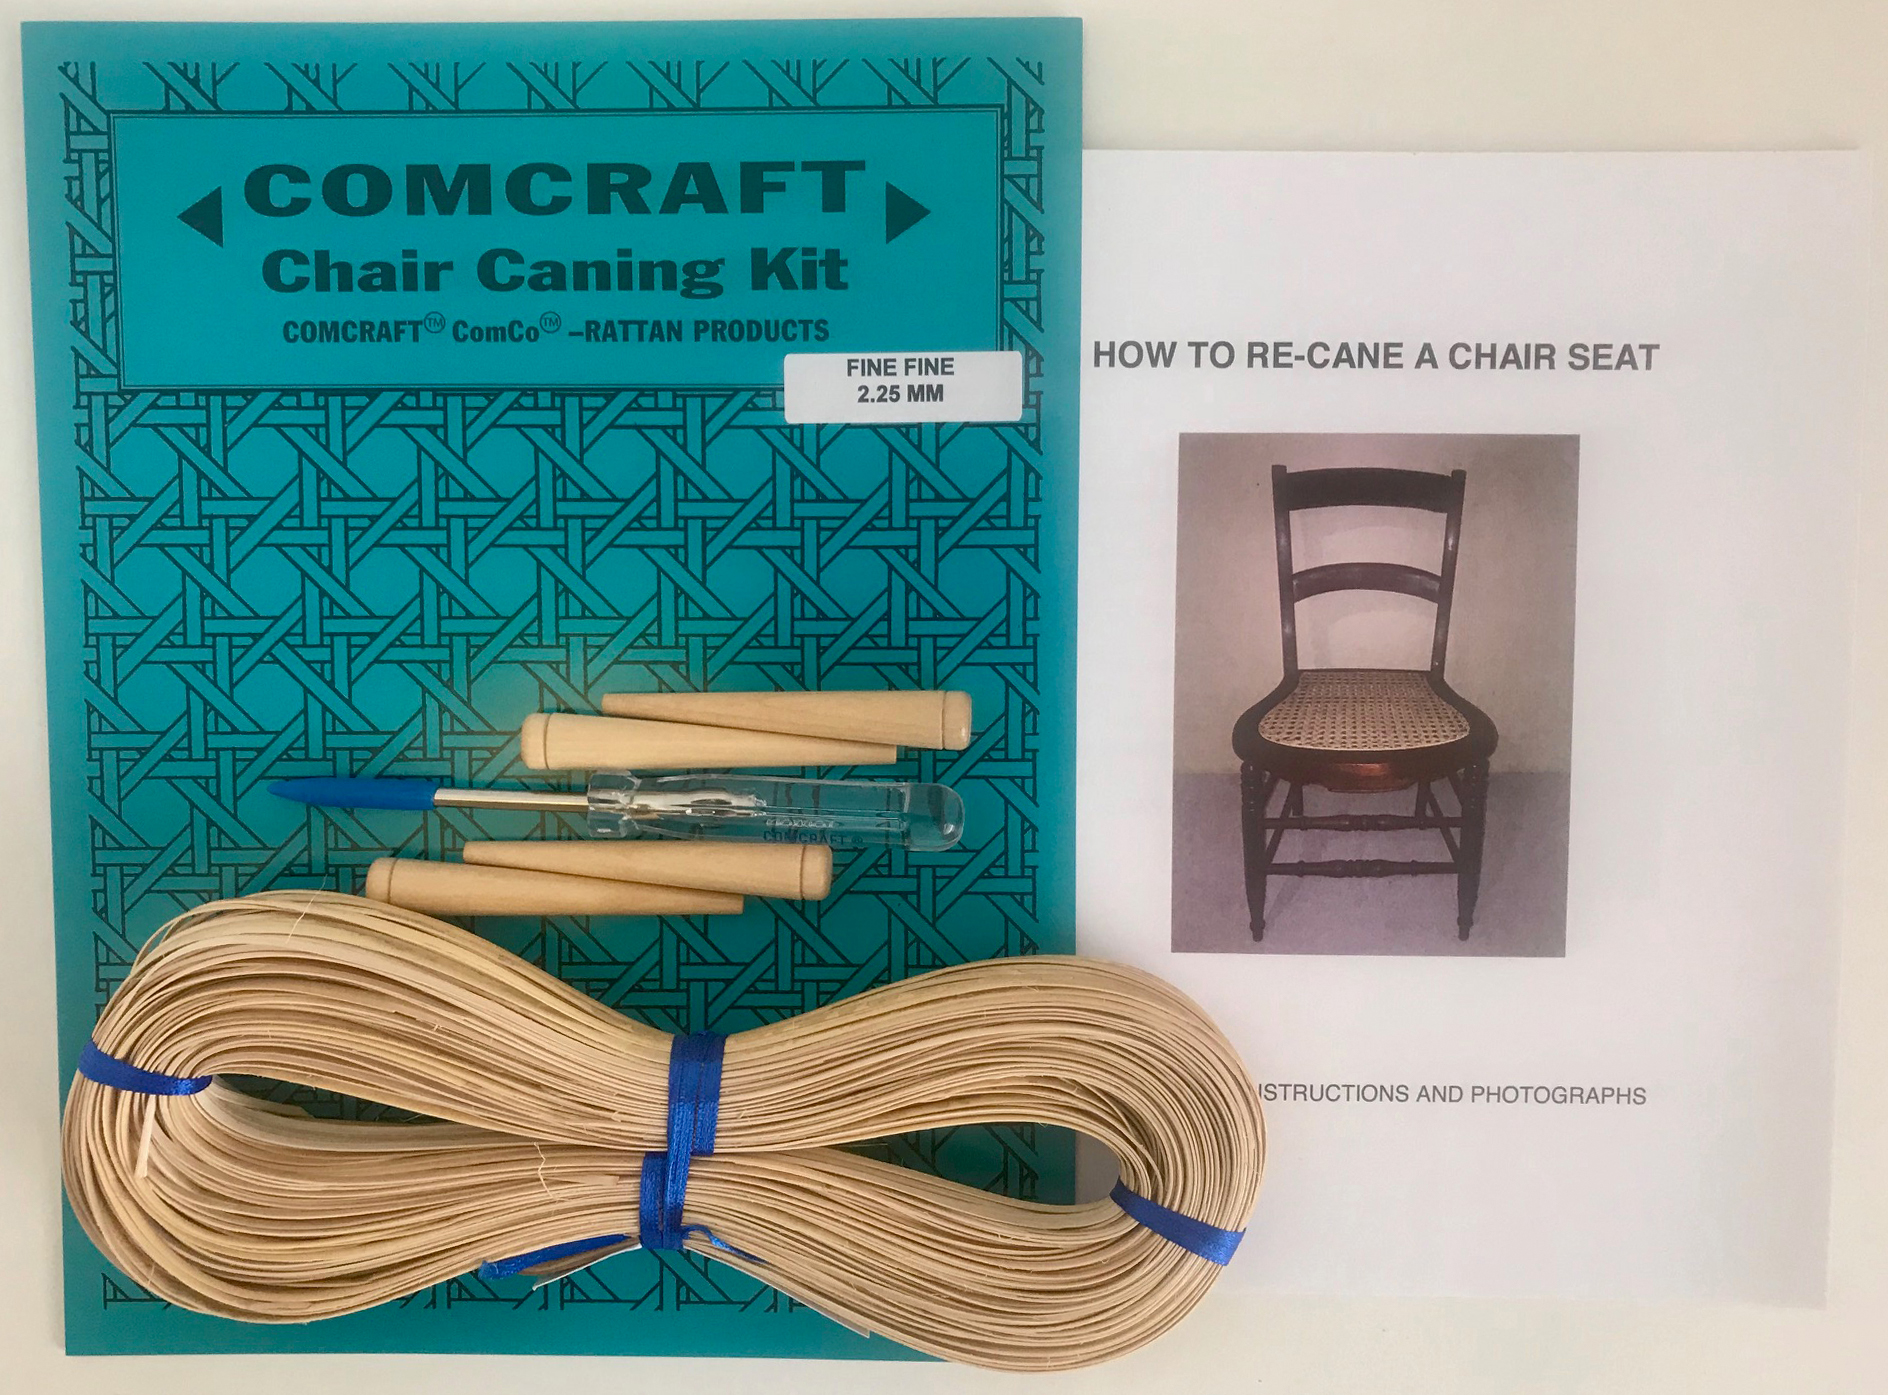 & Comcraft Chair Caning Kit-Fine Fine 2.25Mm Cane